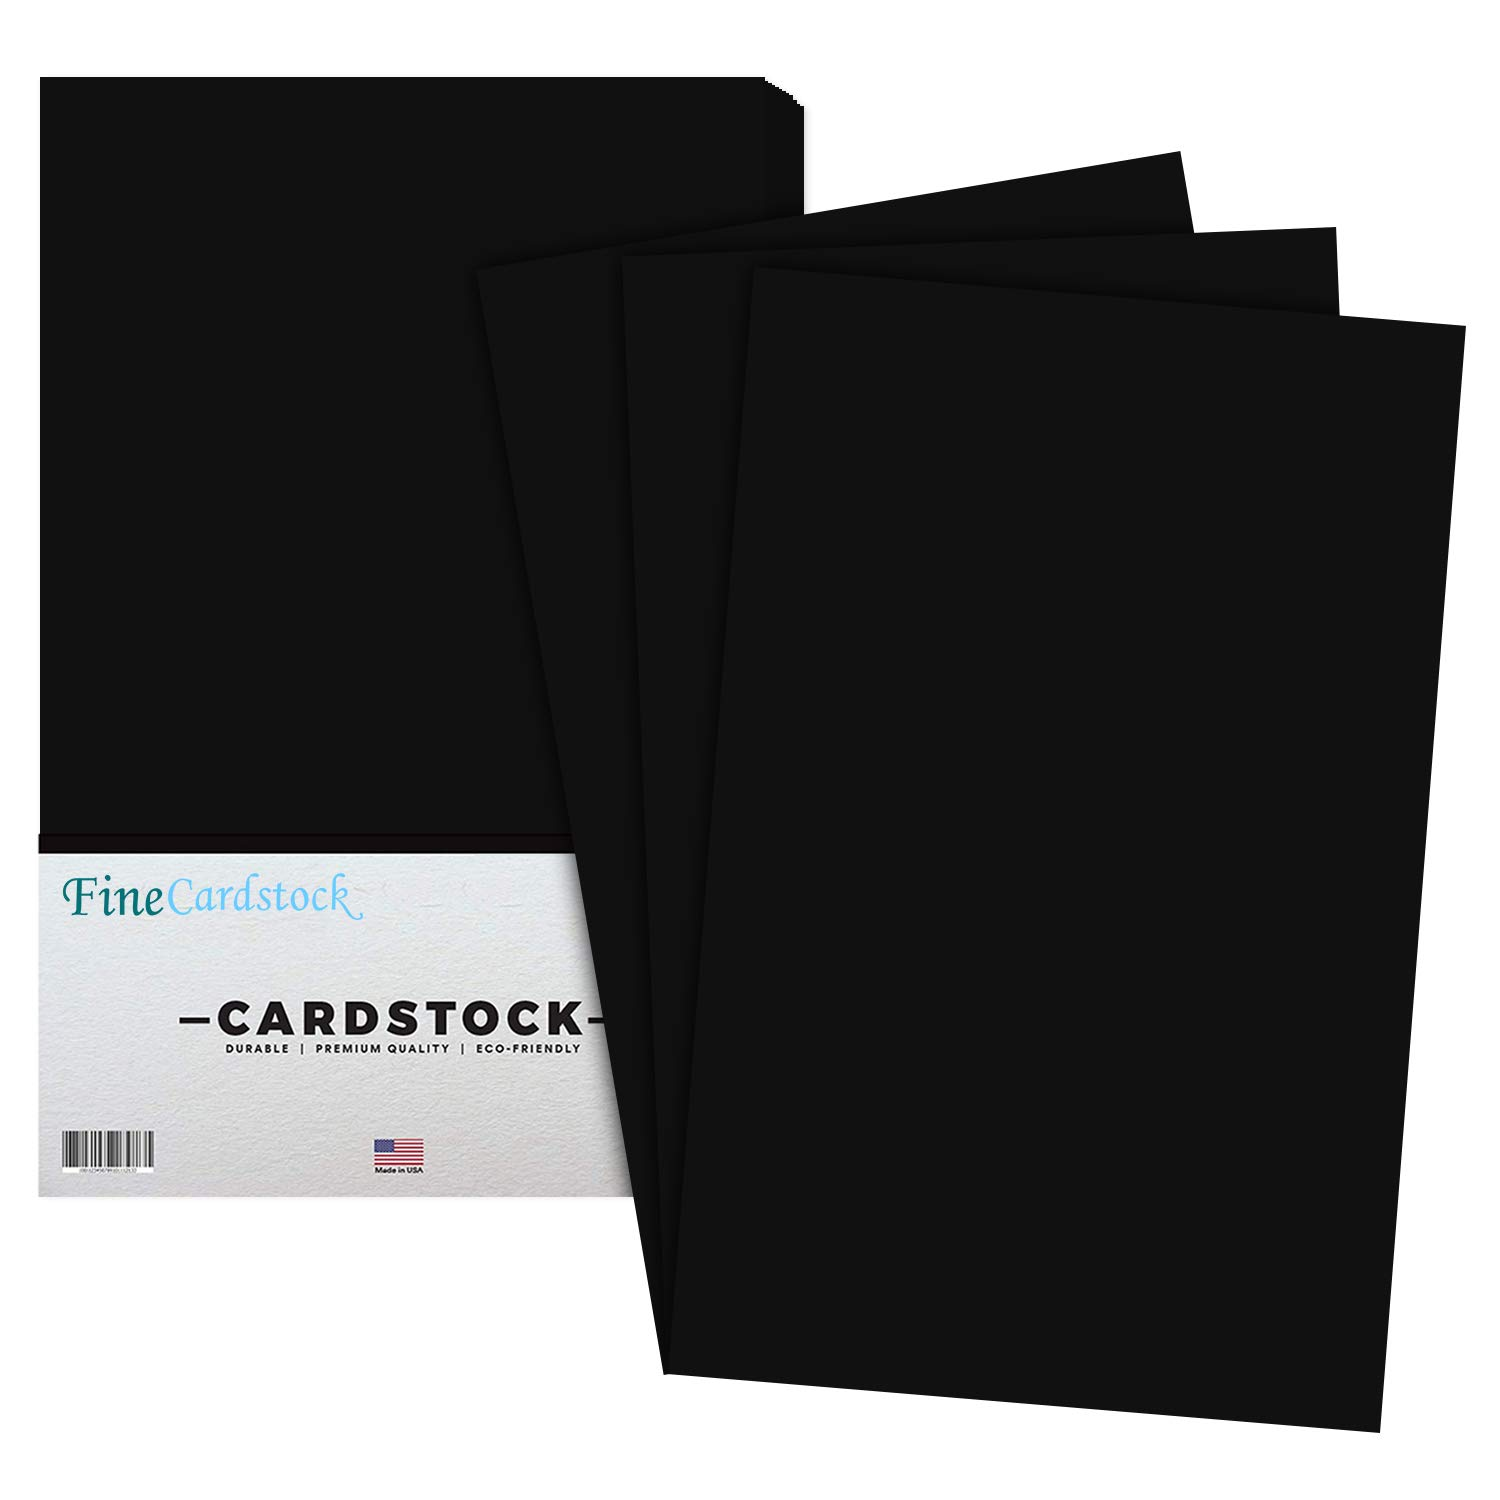 Premium Color Card Stock Paper | 50 Per Pack | Superior Thick 65-lb Cardstock, Perfect for School Supplies, Holiday Crafting, Arts and Crafts | Acid & Lignin Free | Eclipse Black | 11 x 17 by S Superfine Printing